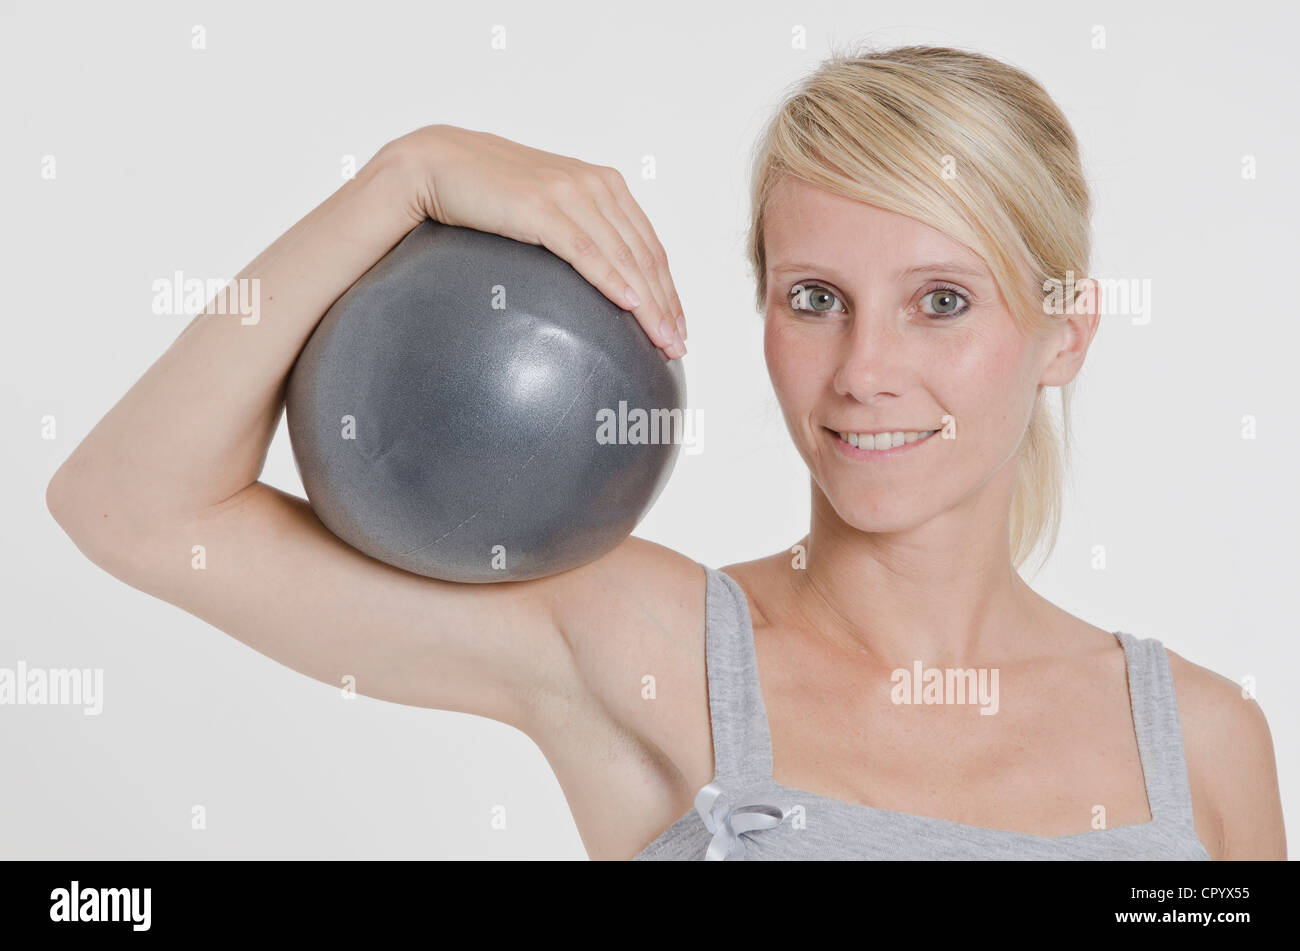 Young woman holding an exercise ball - Stock Image